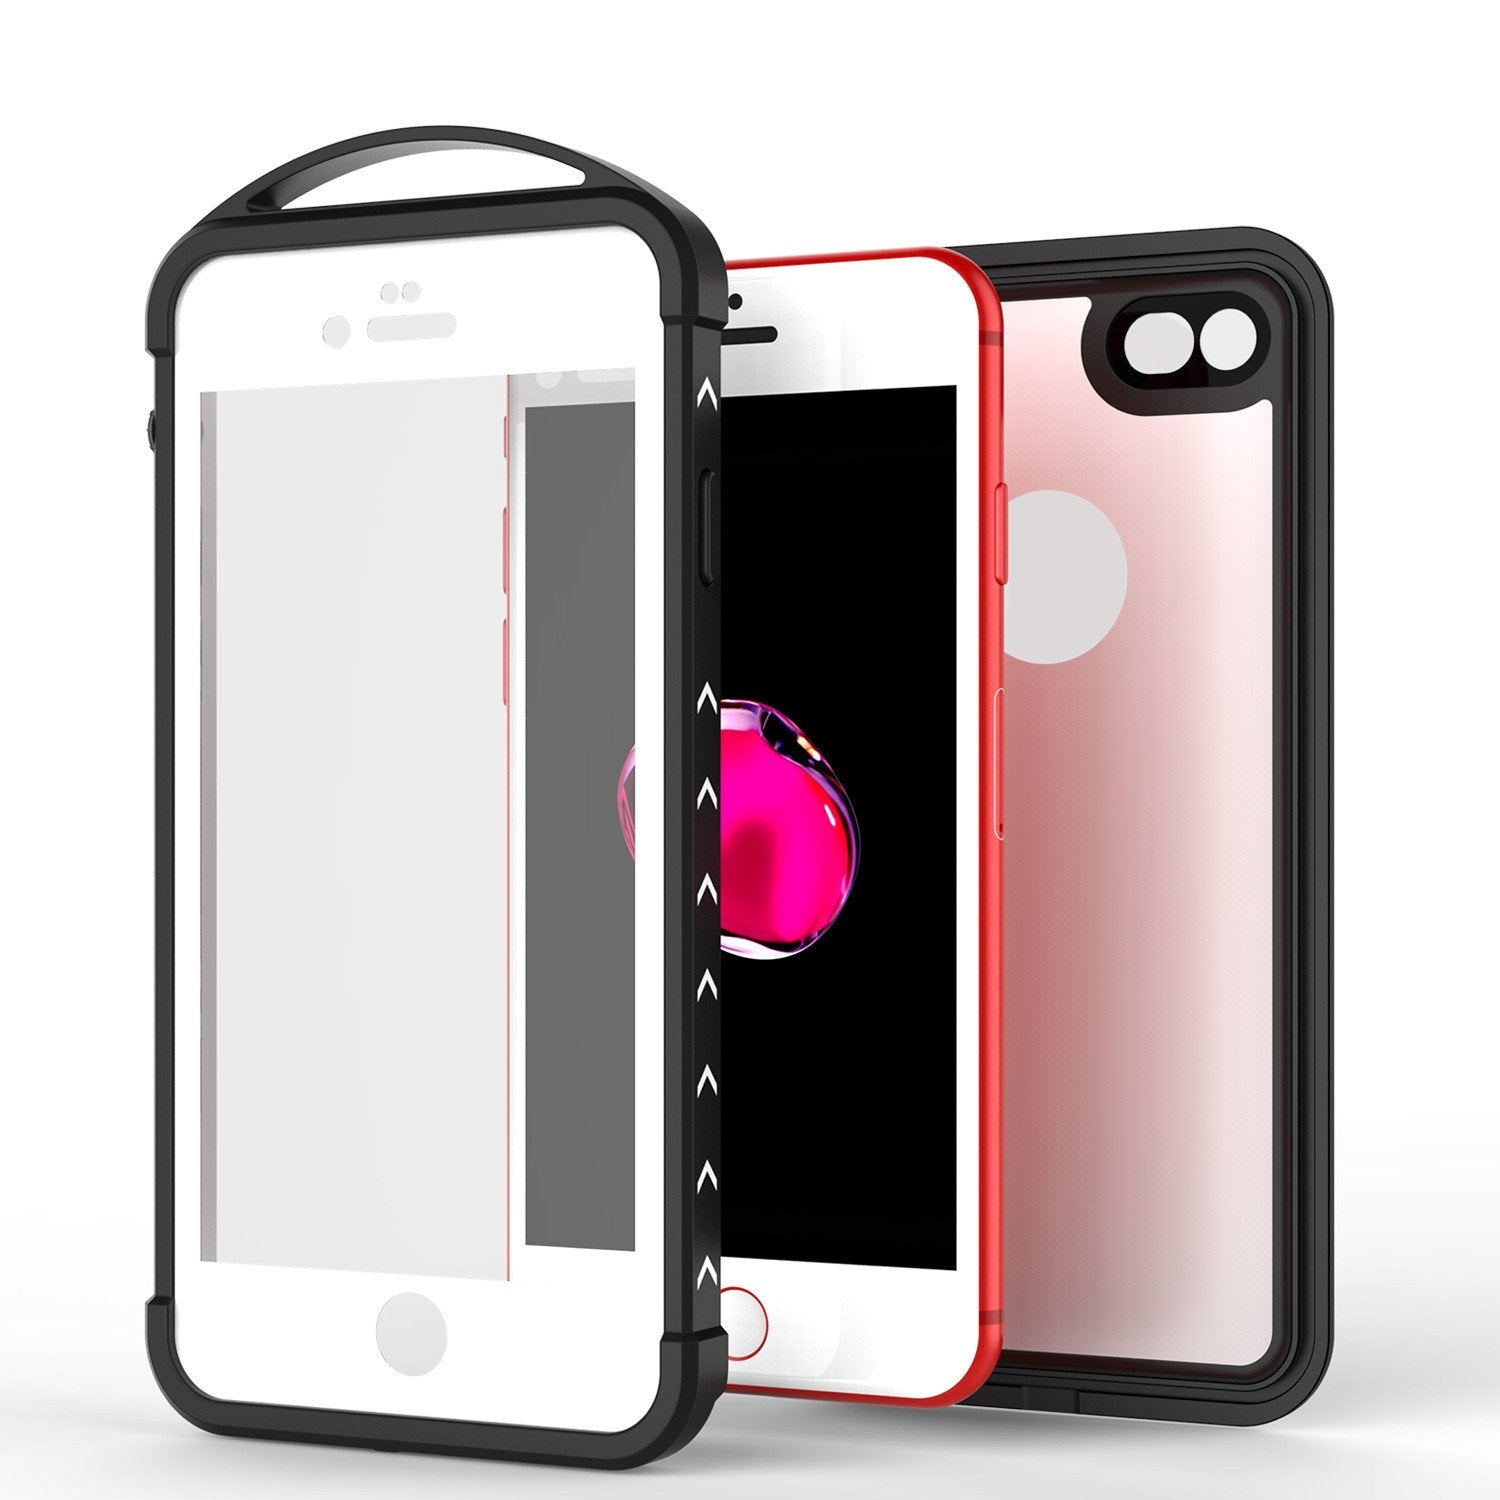 iPhone 7 Waterproof Case, Punkcase ALPINE Series, White | Heavy Duty Armor Cover